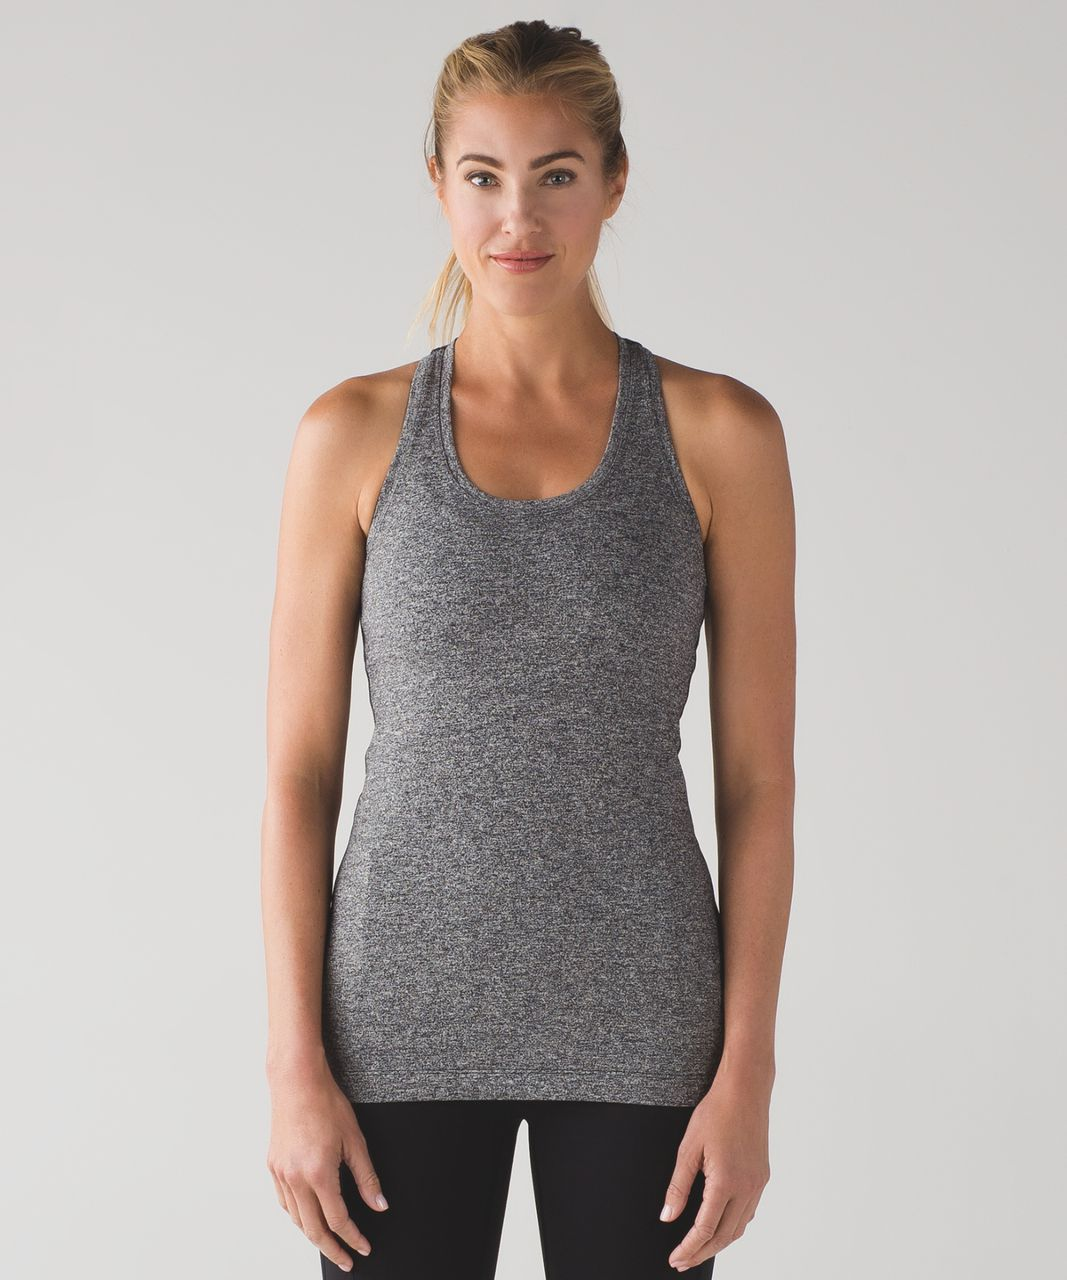 Lululemon Cool Racerback II - Heathered Black (First Release)